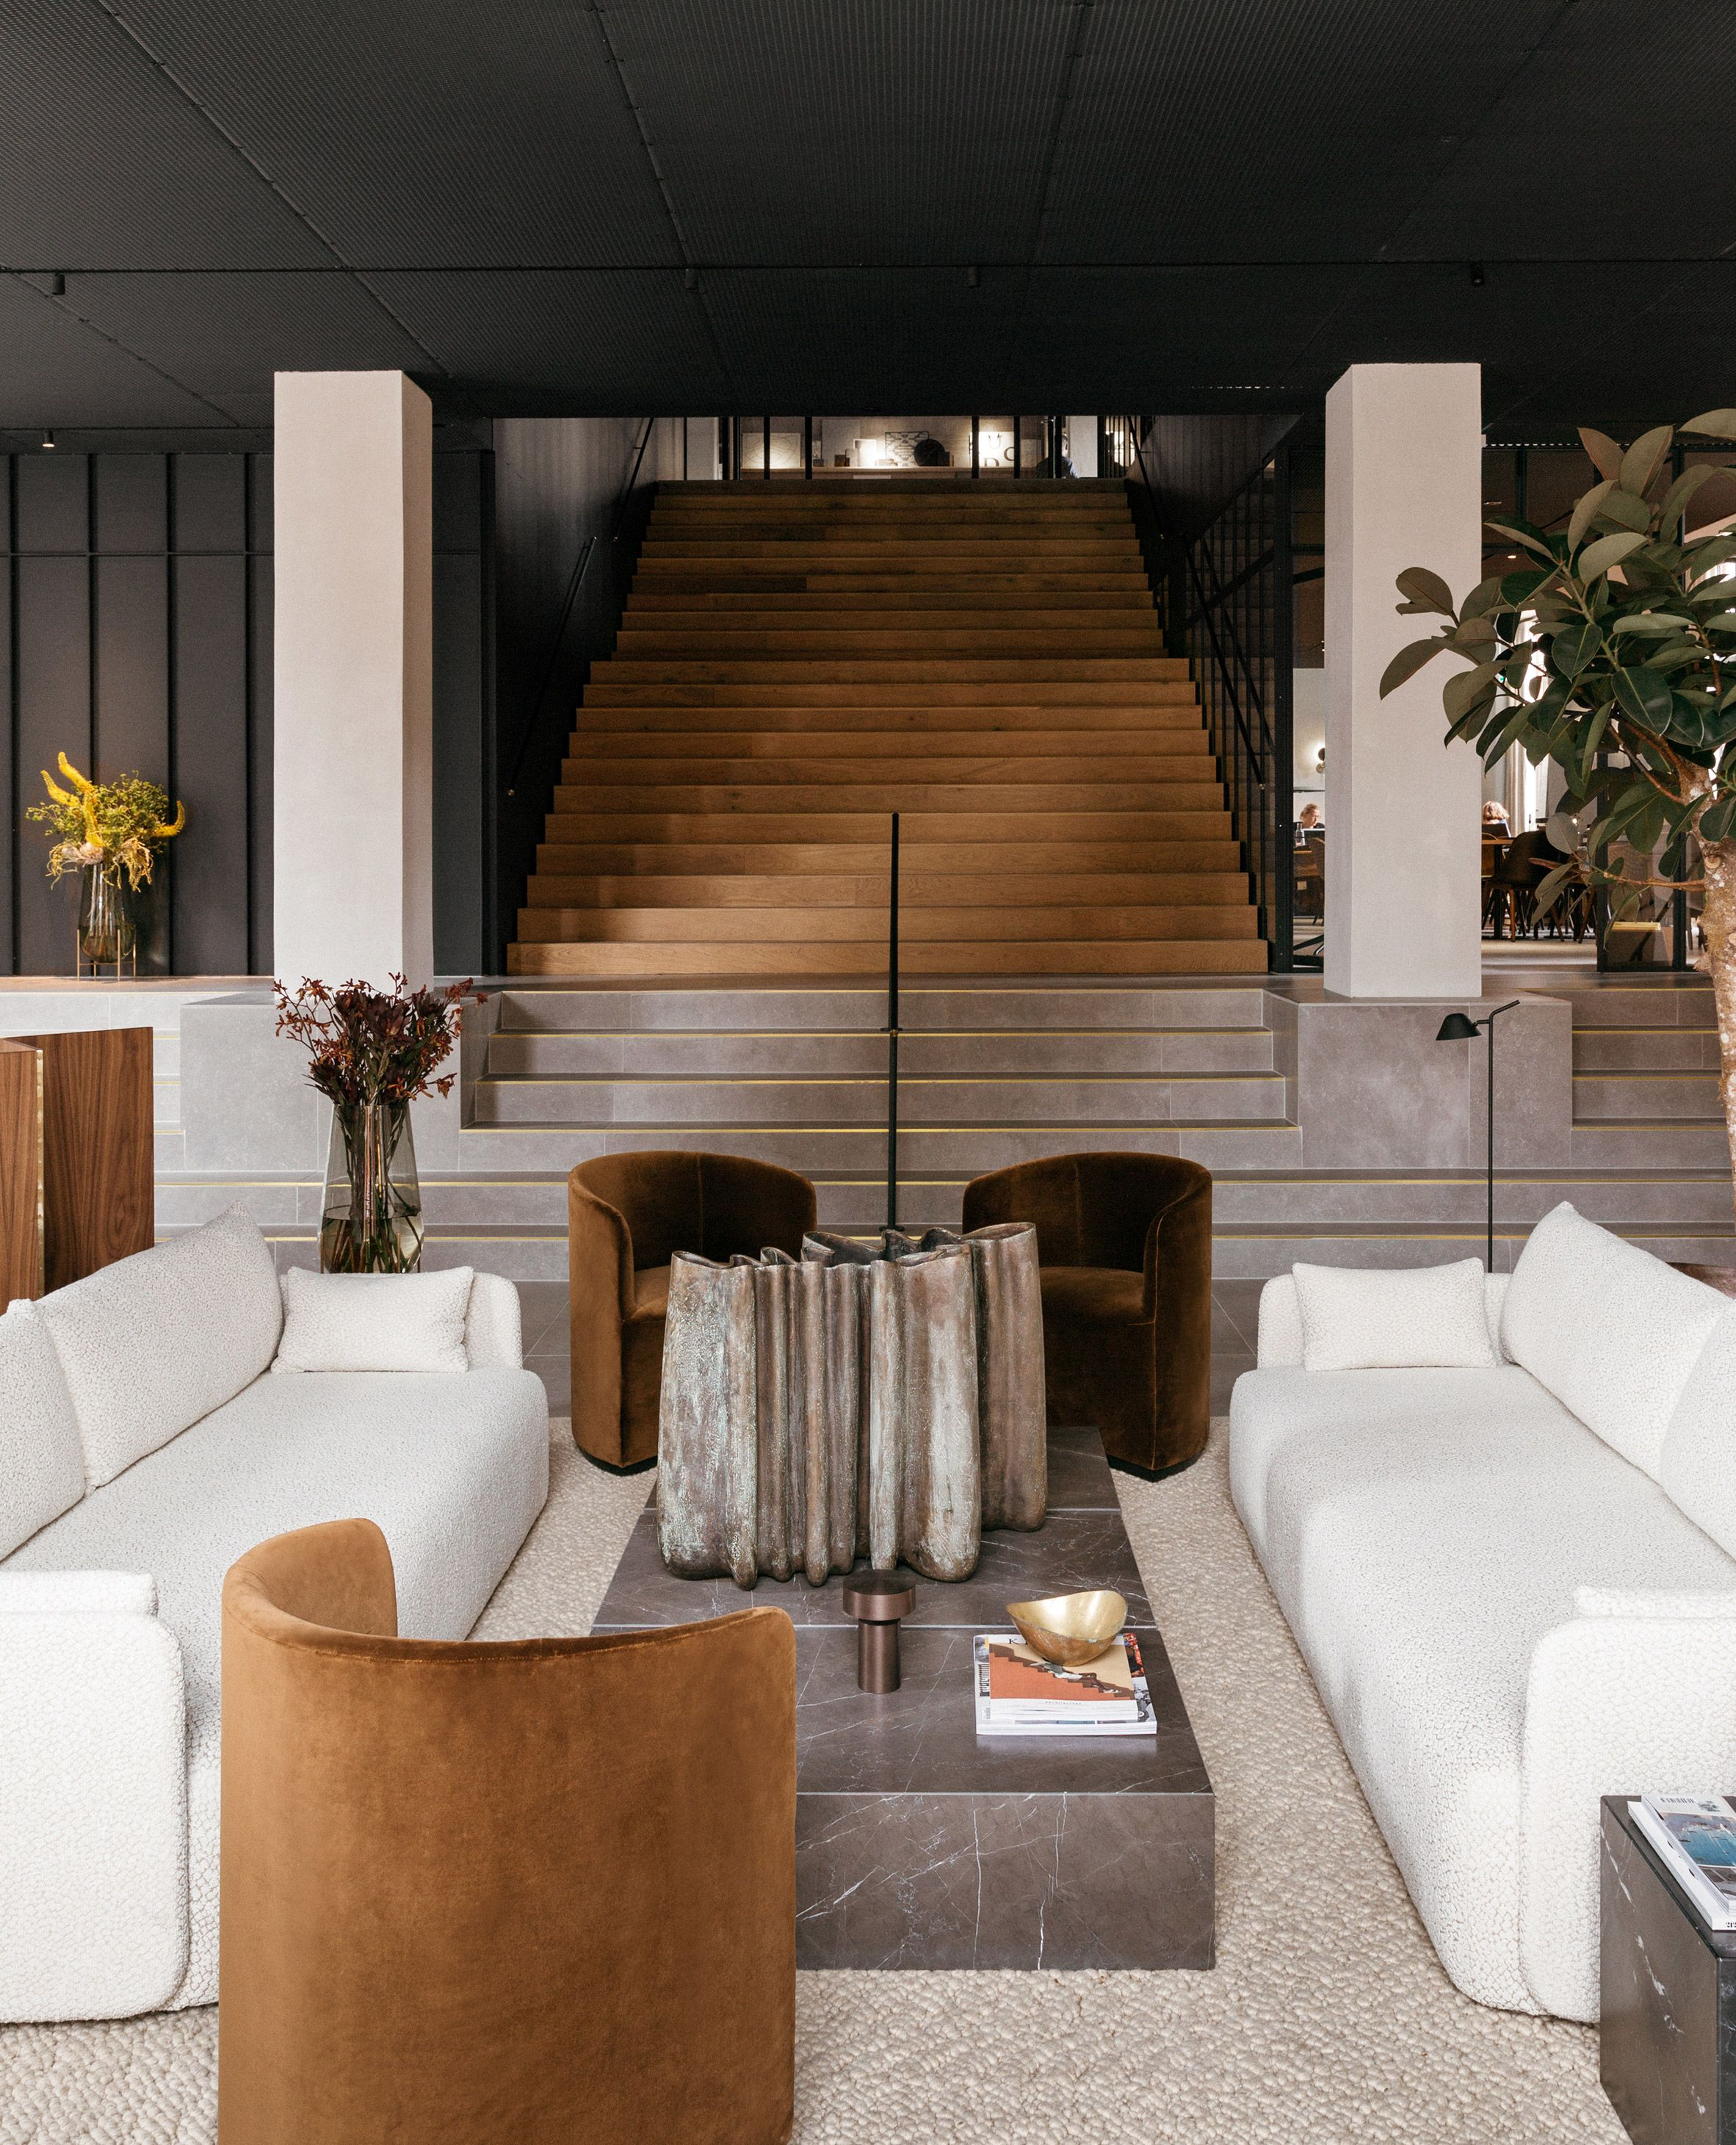 The Audo Hotel By Menu And Norm Architects Doubles As A Showroom